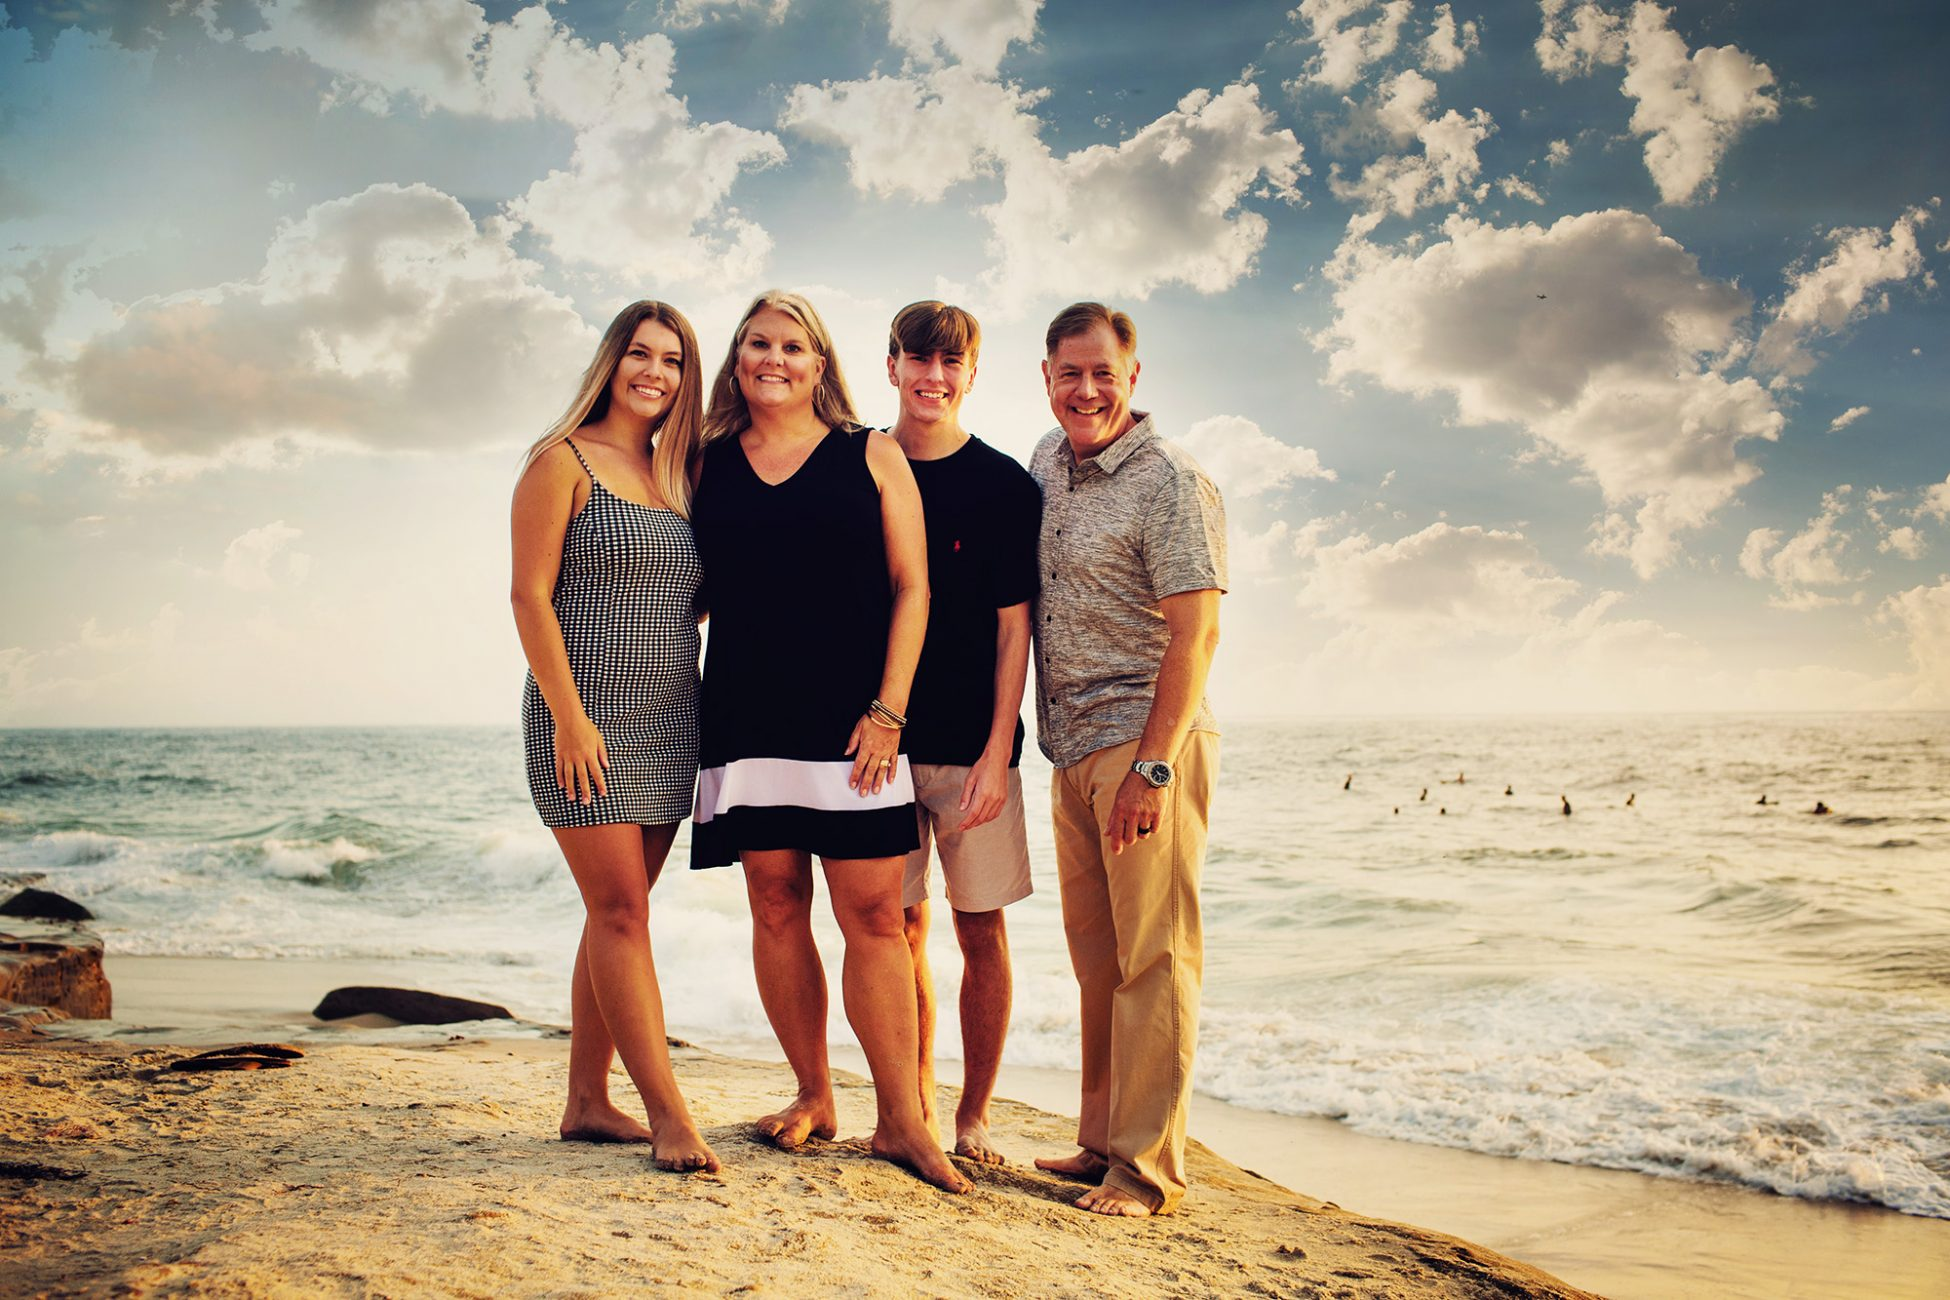 Beautiful San Diego family portrait at scenic windansea beach in La Jolla, California by dennis mock photographer.